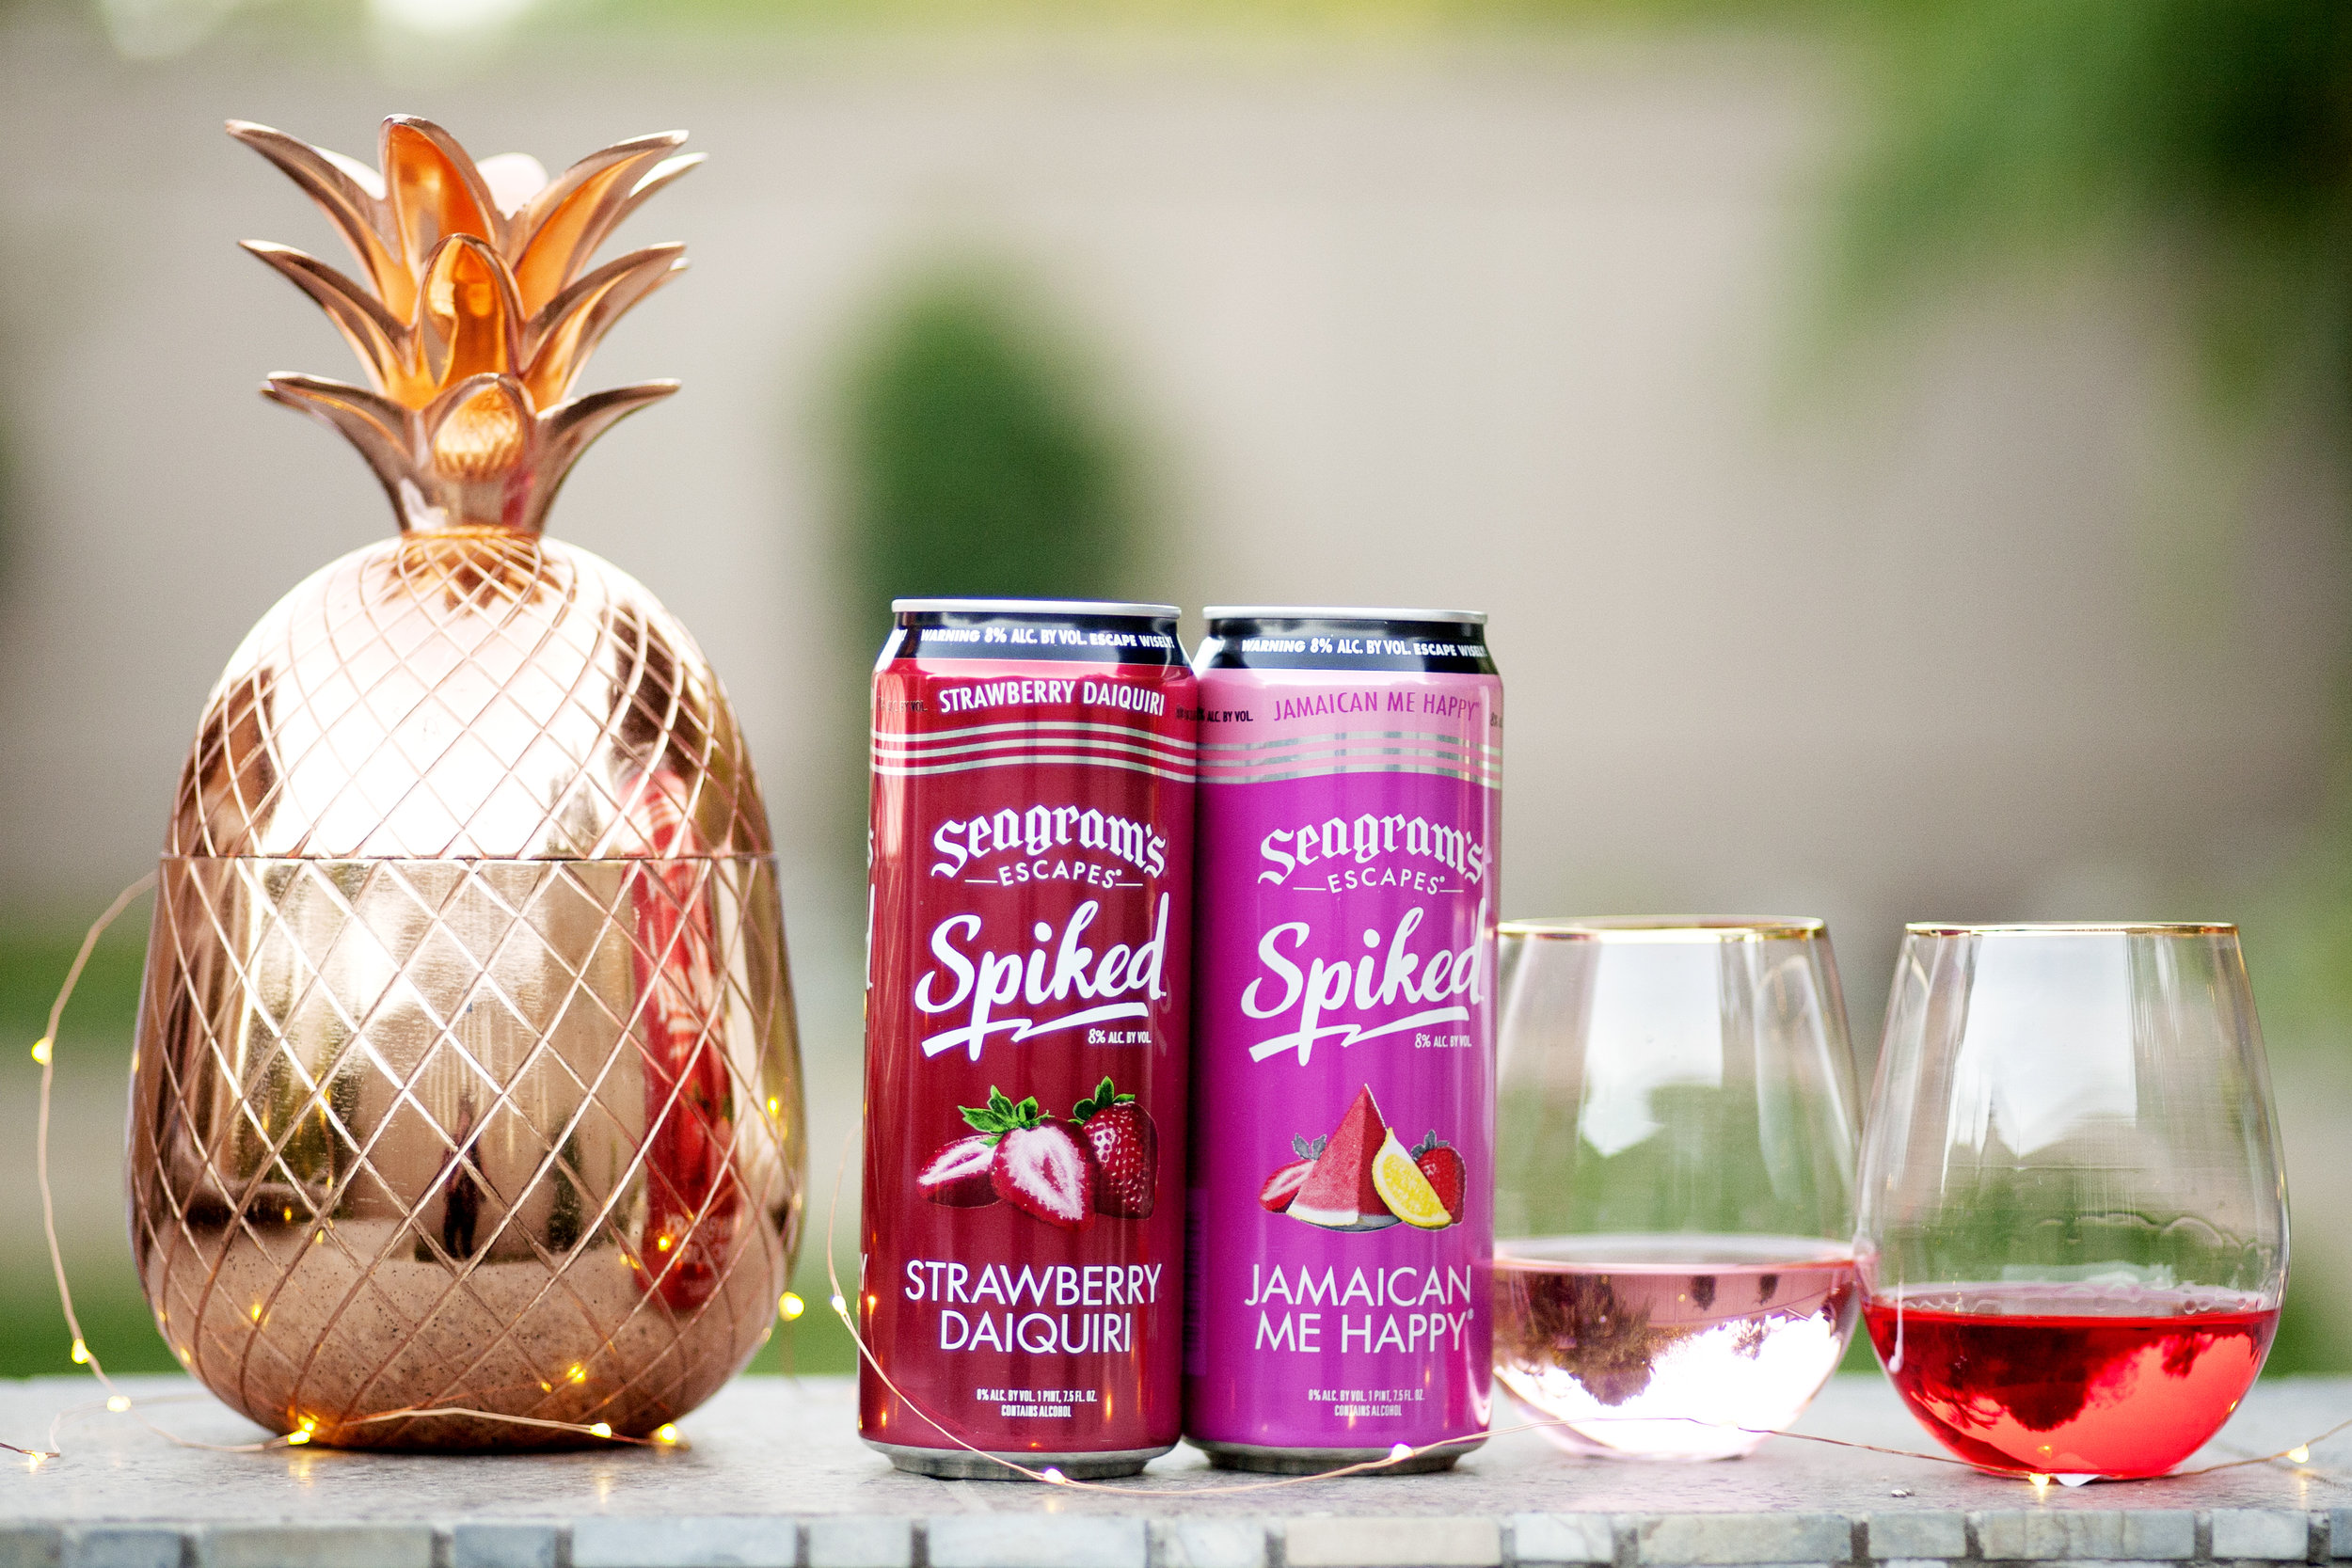 Seagram's Escapes Spiked on The Gilded Bellini